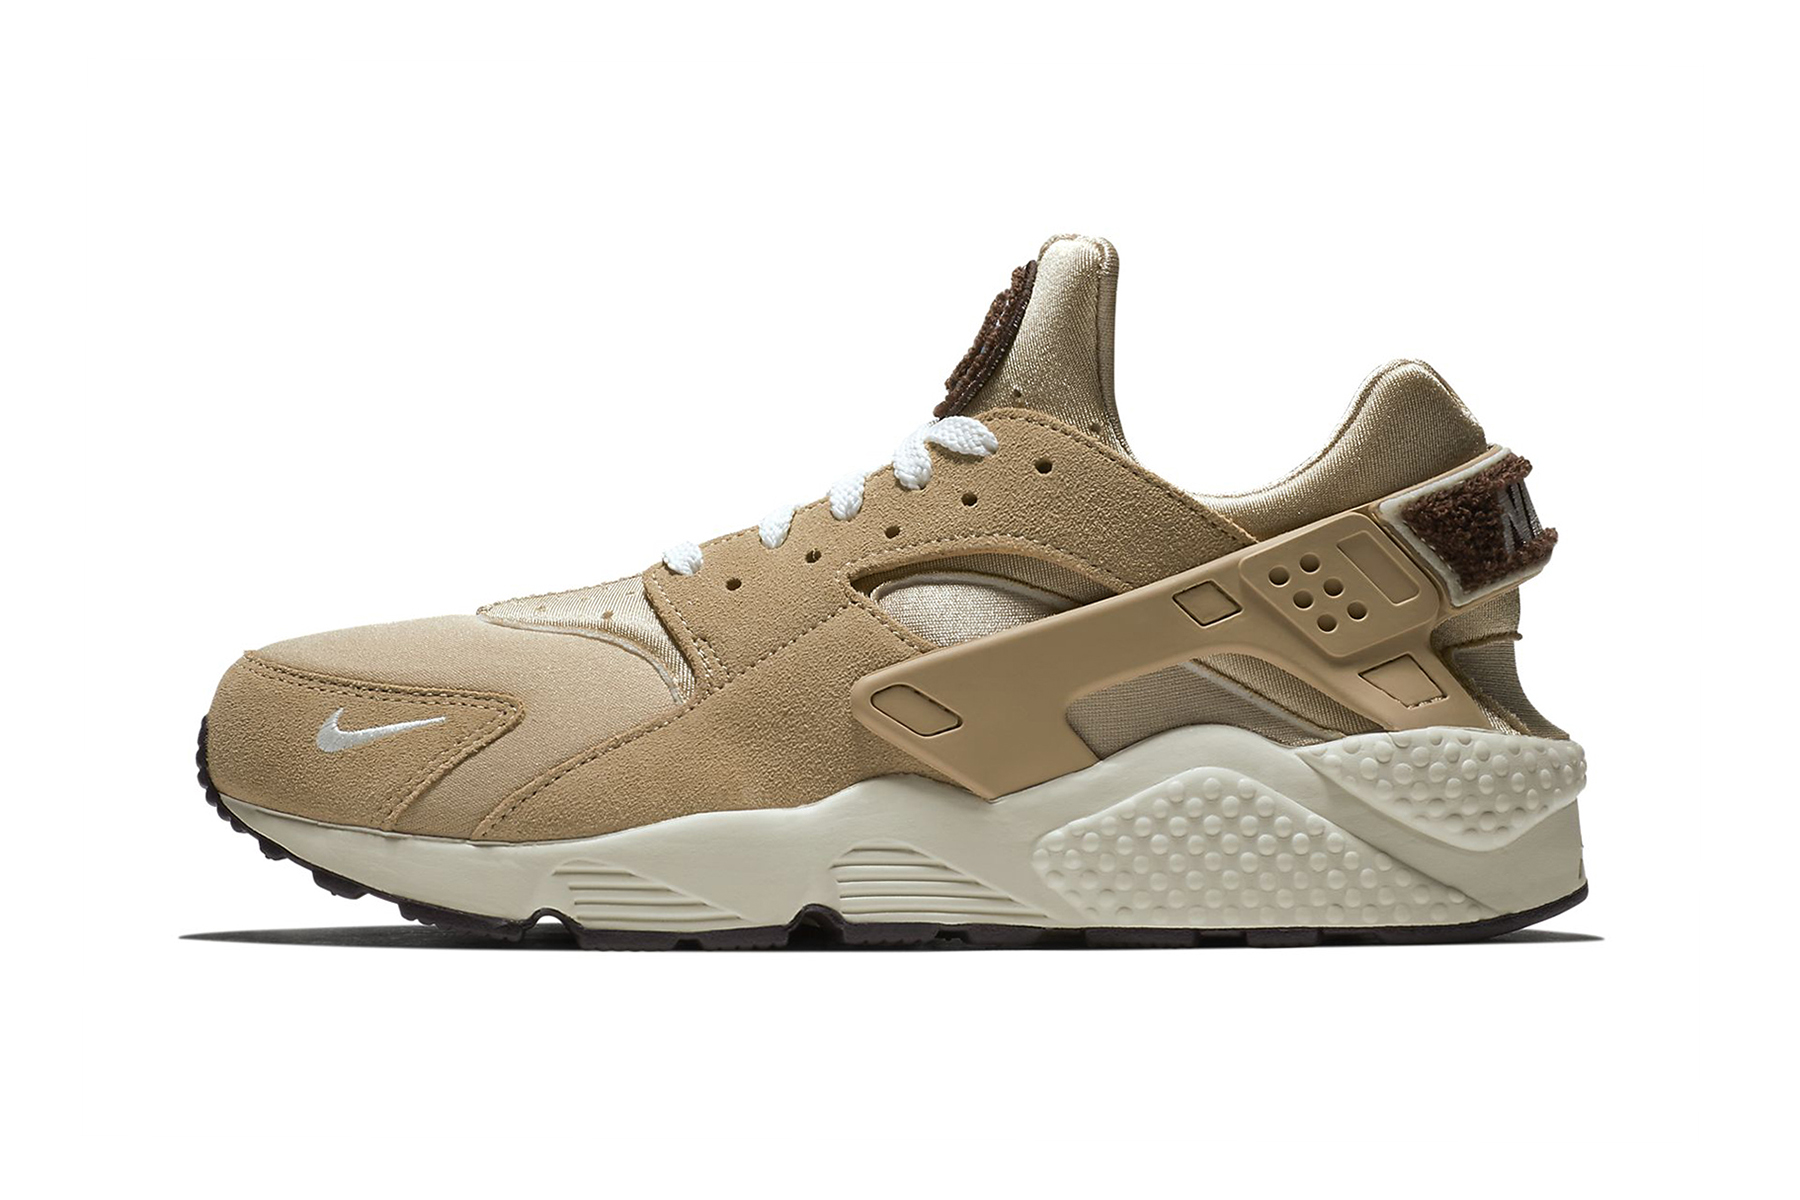 Nike Air Huarache Premium Release Date sneaker price info purchase chenille logo branding mini swoosh colorway Oil Grey/Rainforest/Bright Mango/Sail University Red/Blackened Blue/Provence Desert/Burgundy Ash/Royal Tint/Sail  Royal Tint/Blue Void/Neptune Green/Sail